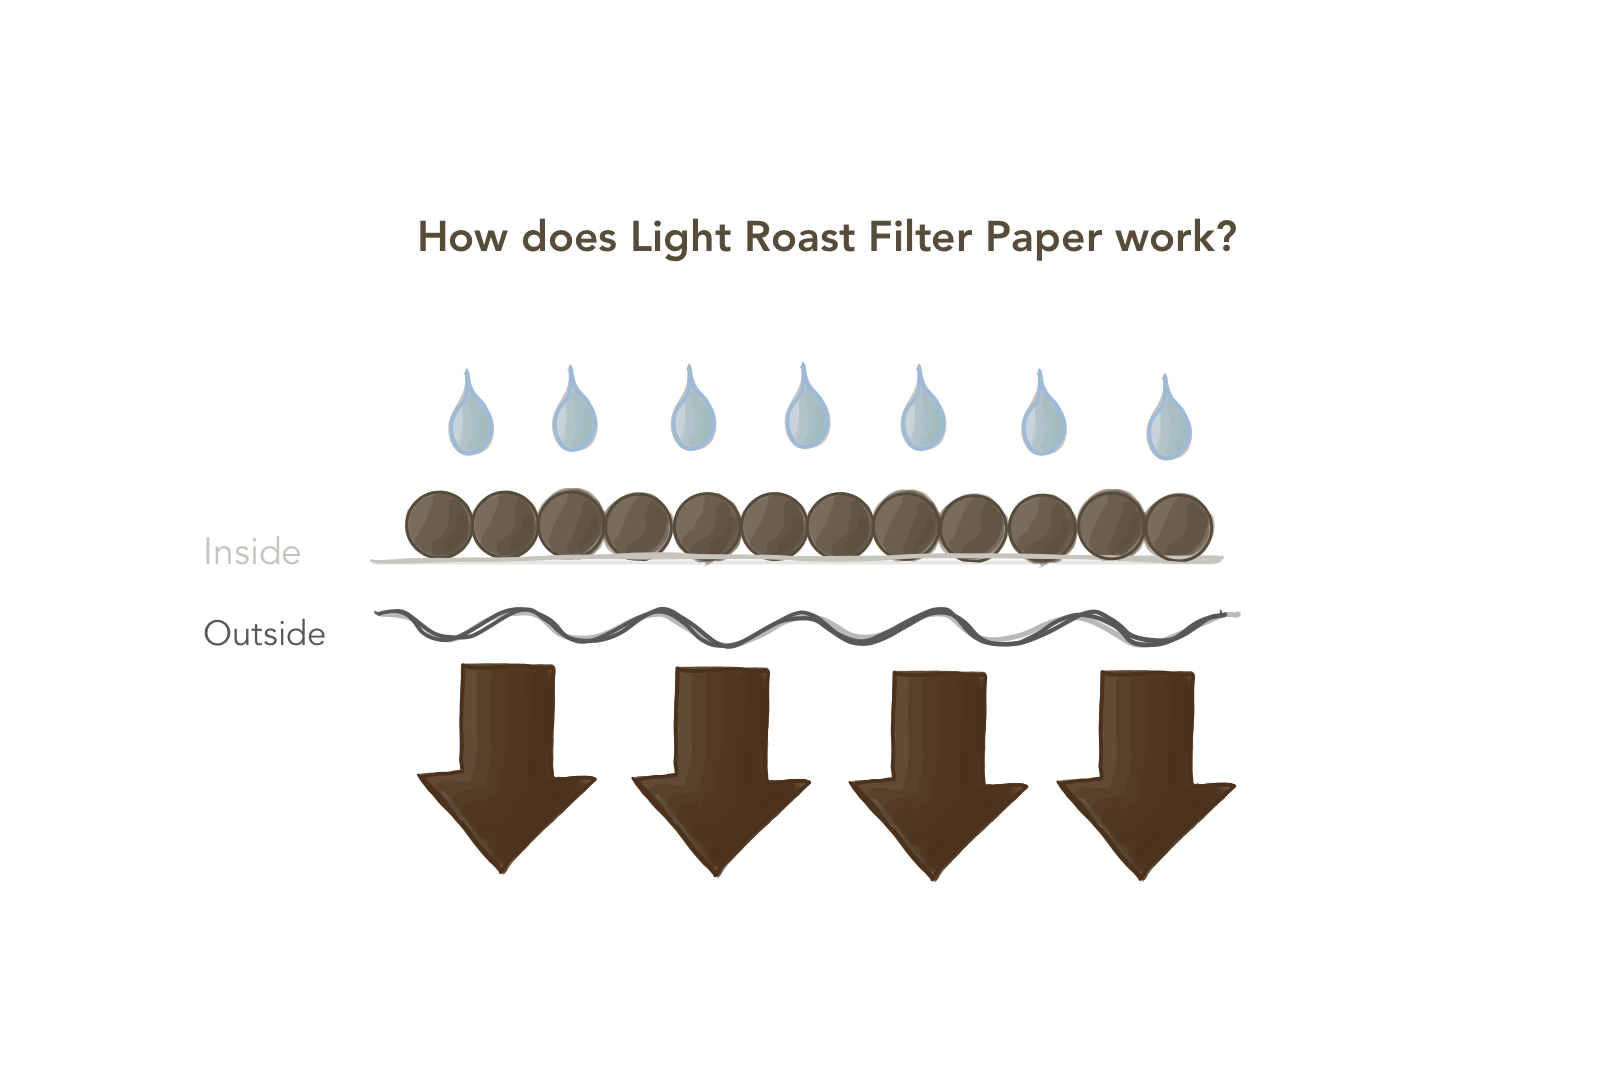 How does Light Roast Filter Paper Work?